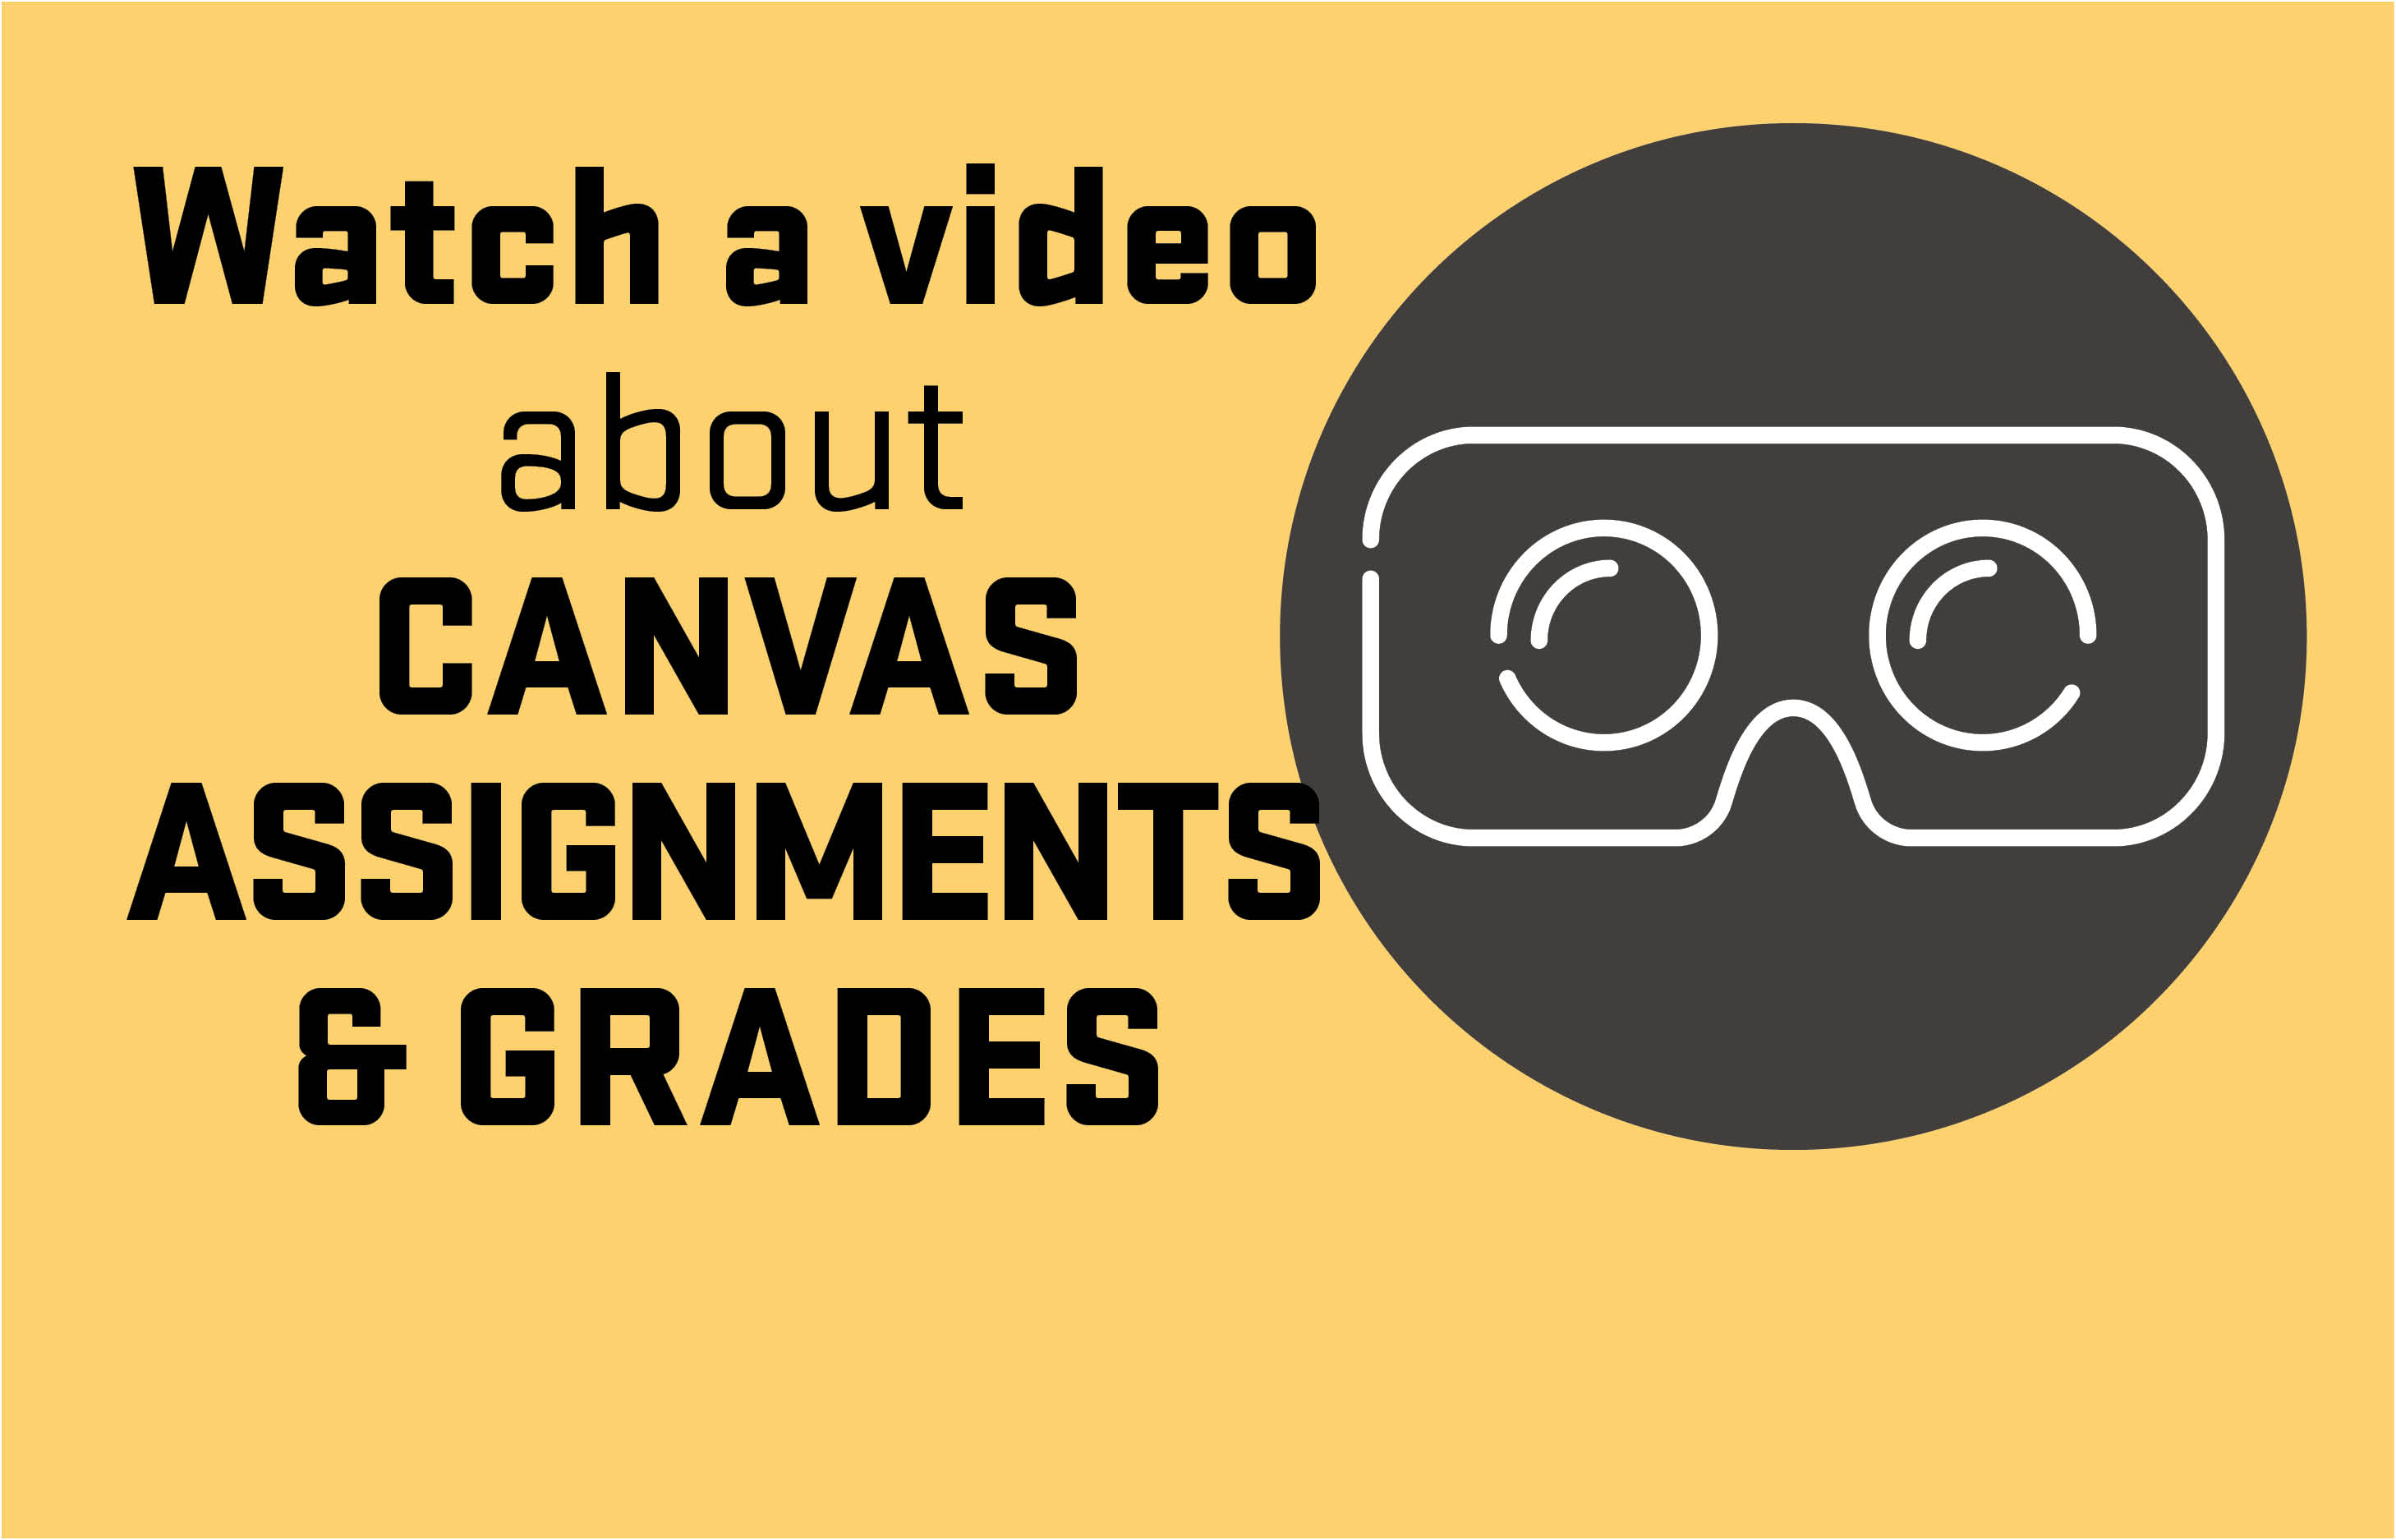 Watch a video about Canvas Assignments and Grades